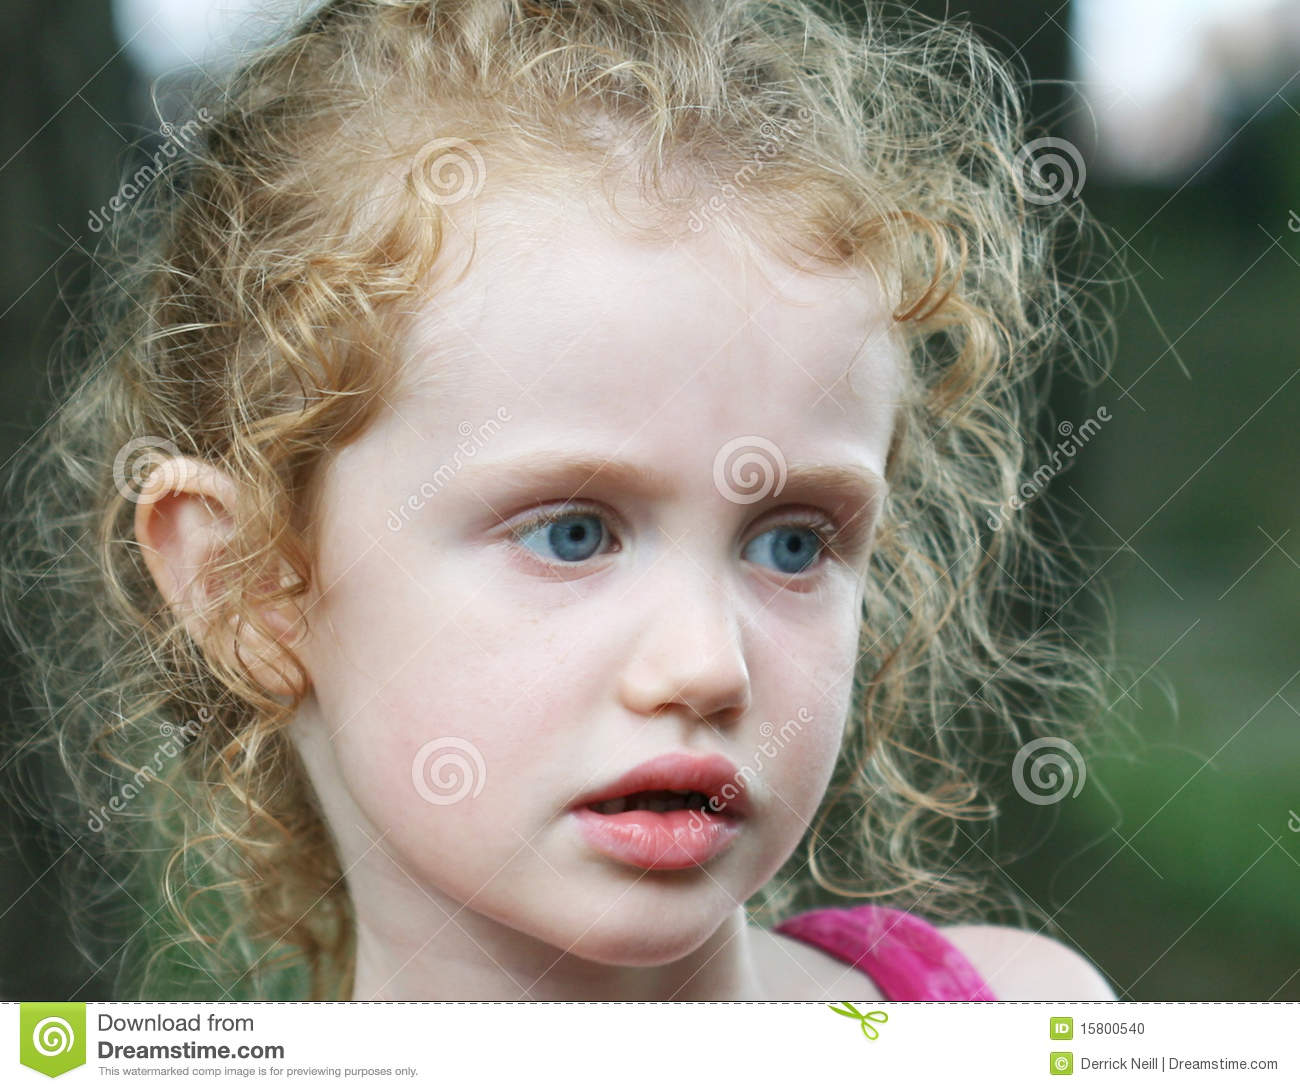 A Little Girl With Big Blue Eyes Stock Photo - Image: 15800540